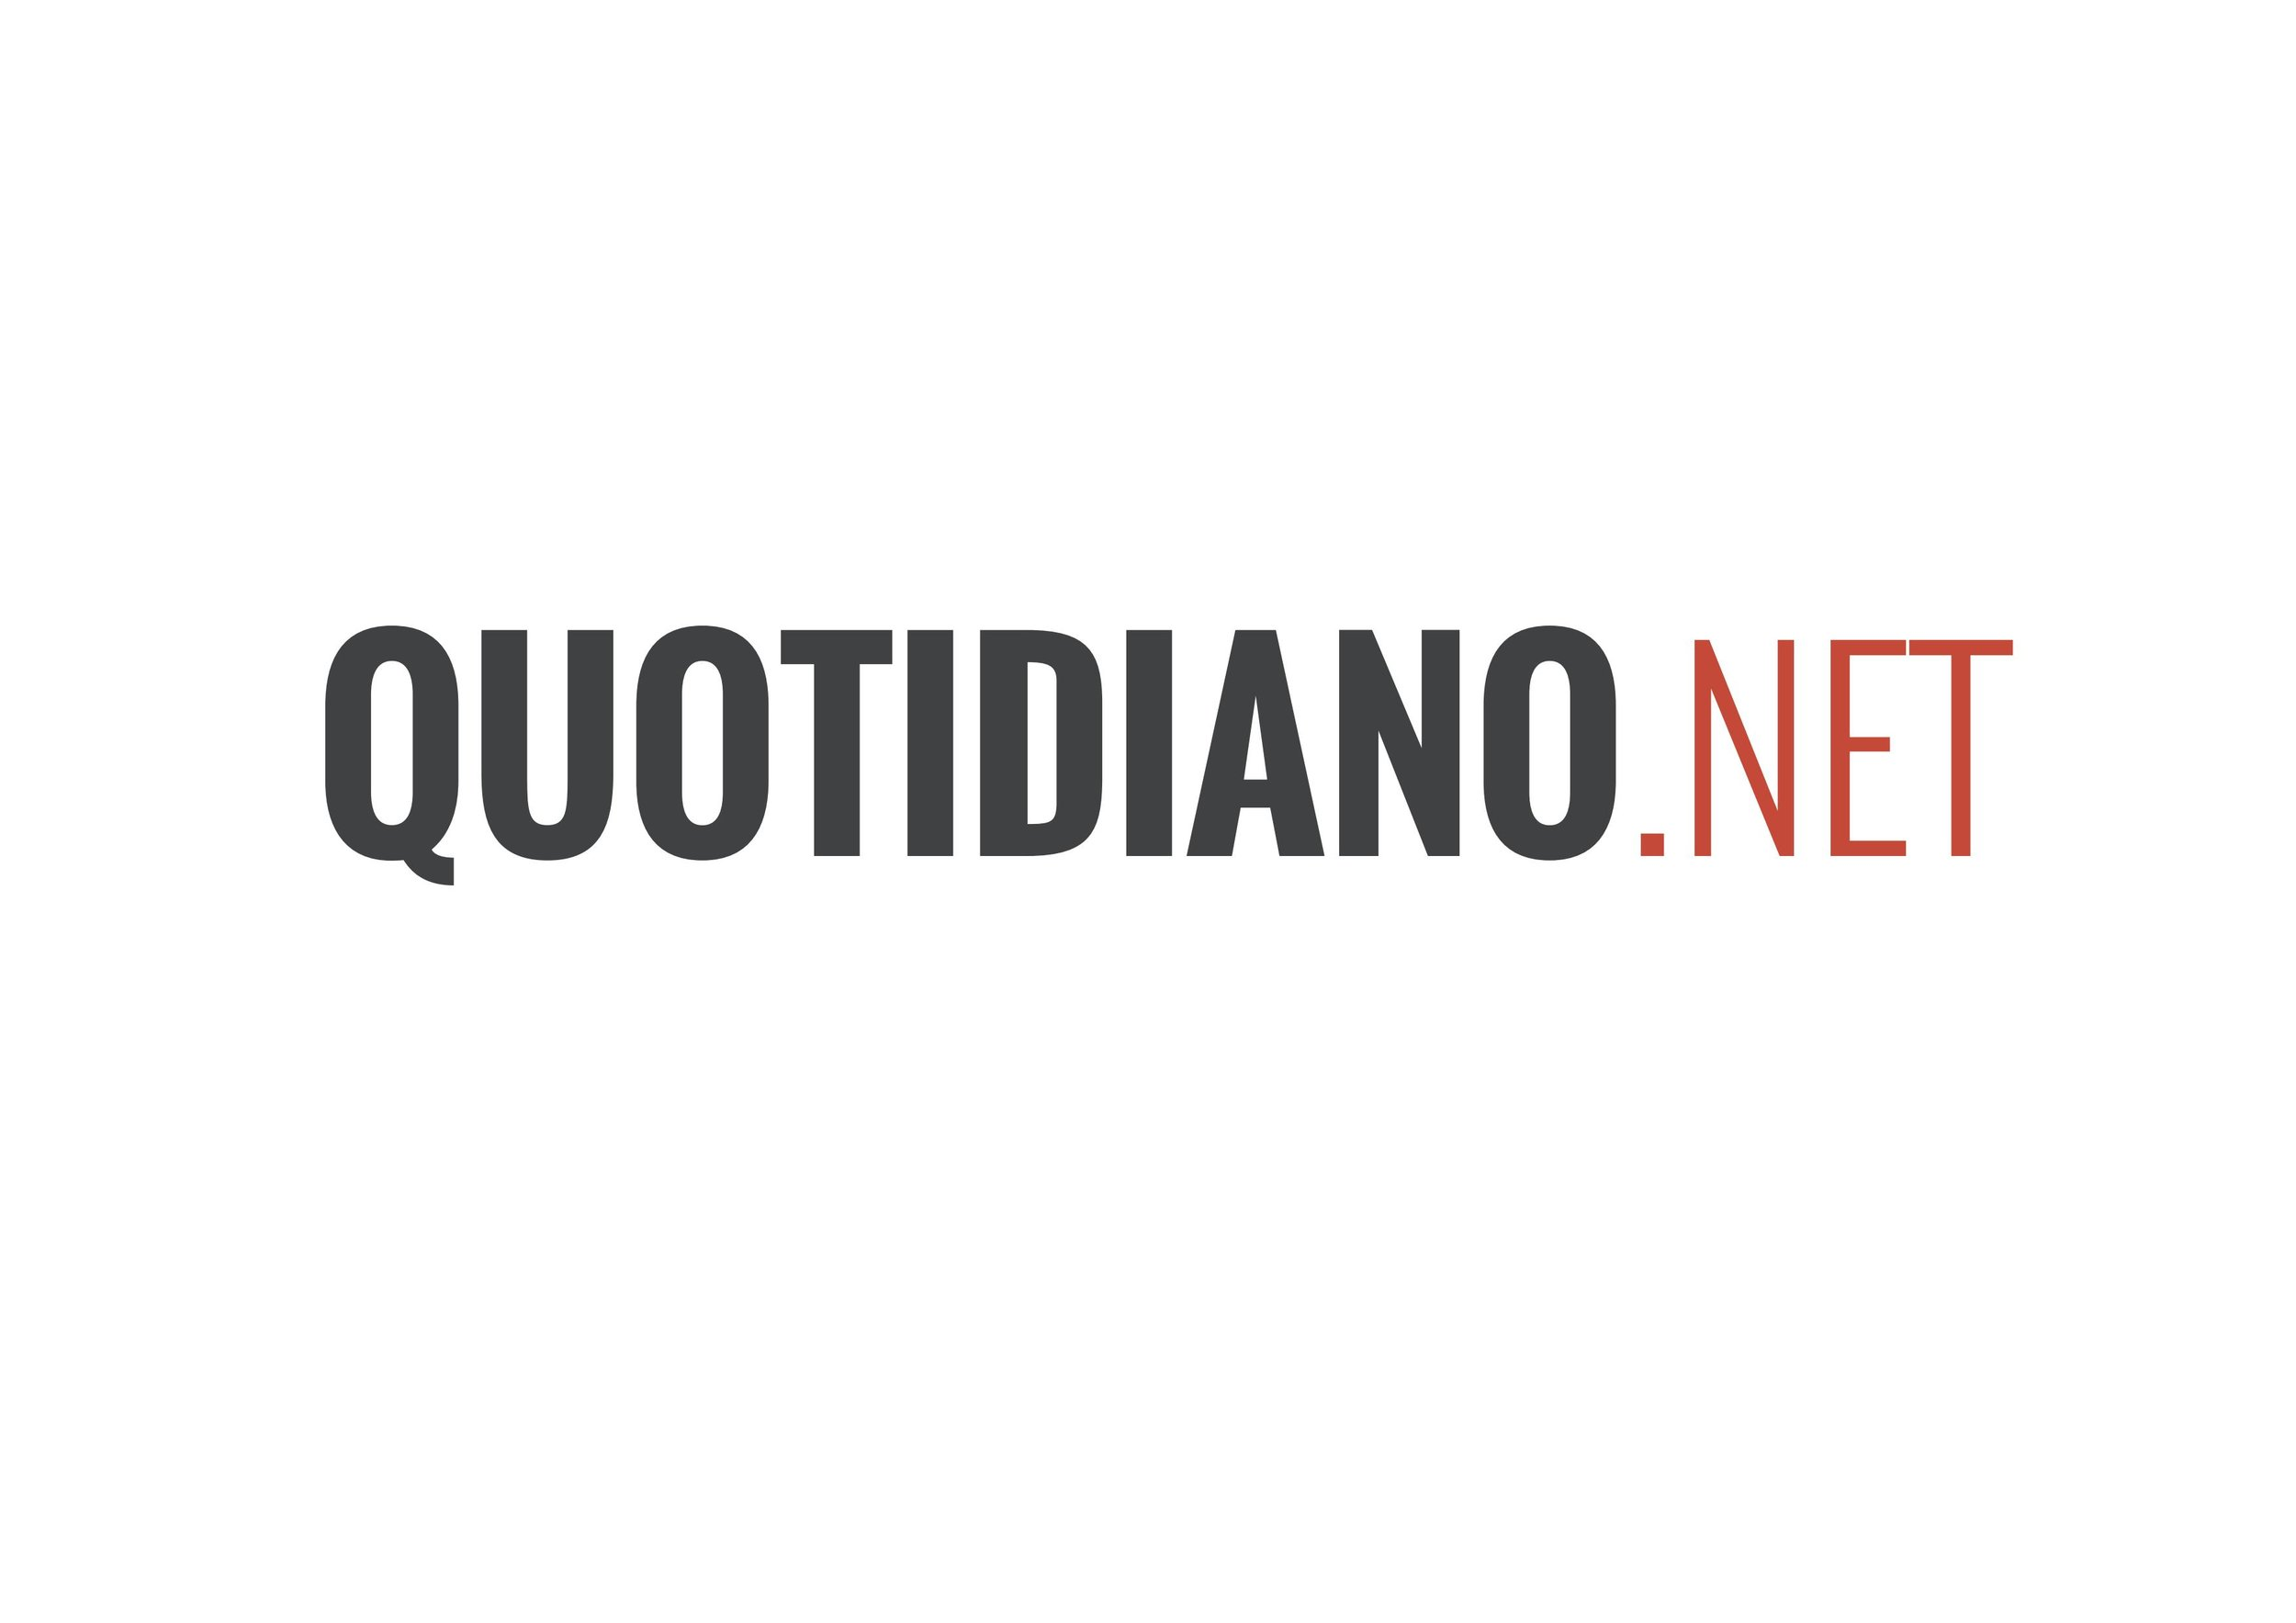 LOGO QUOTIDIANO.NET.jpg